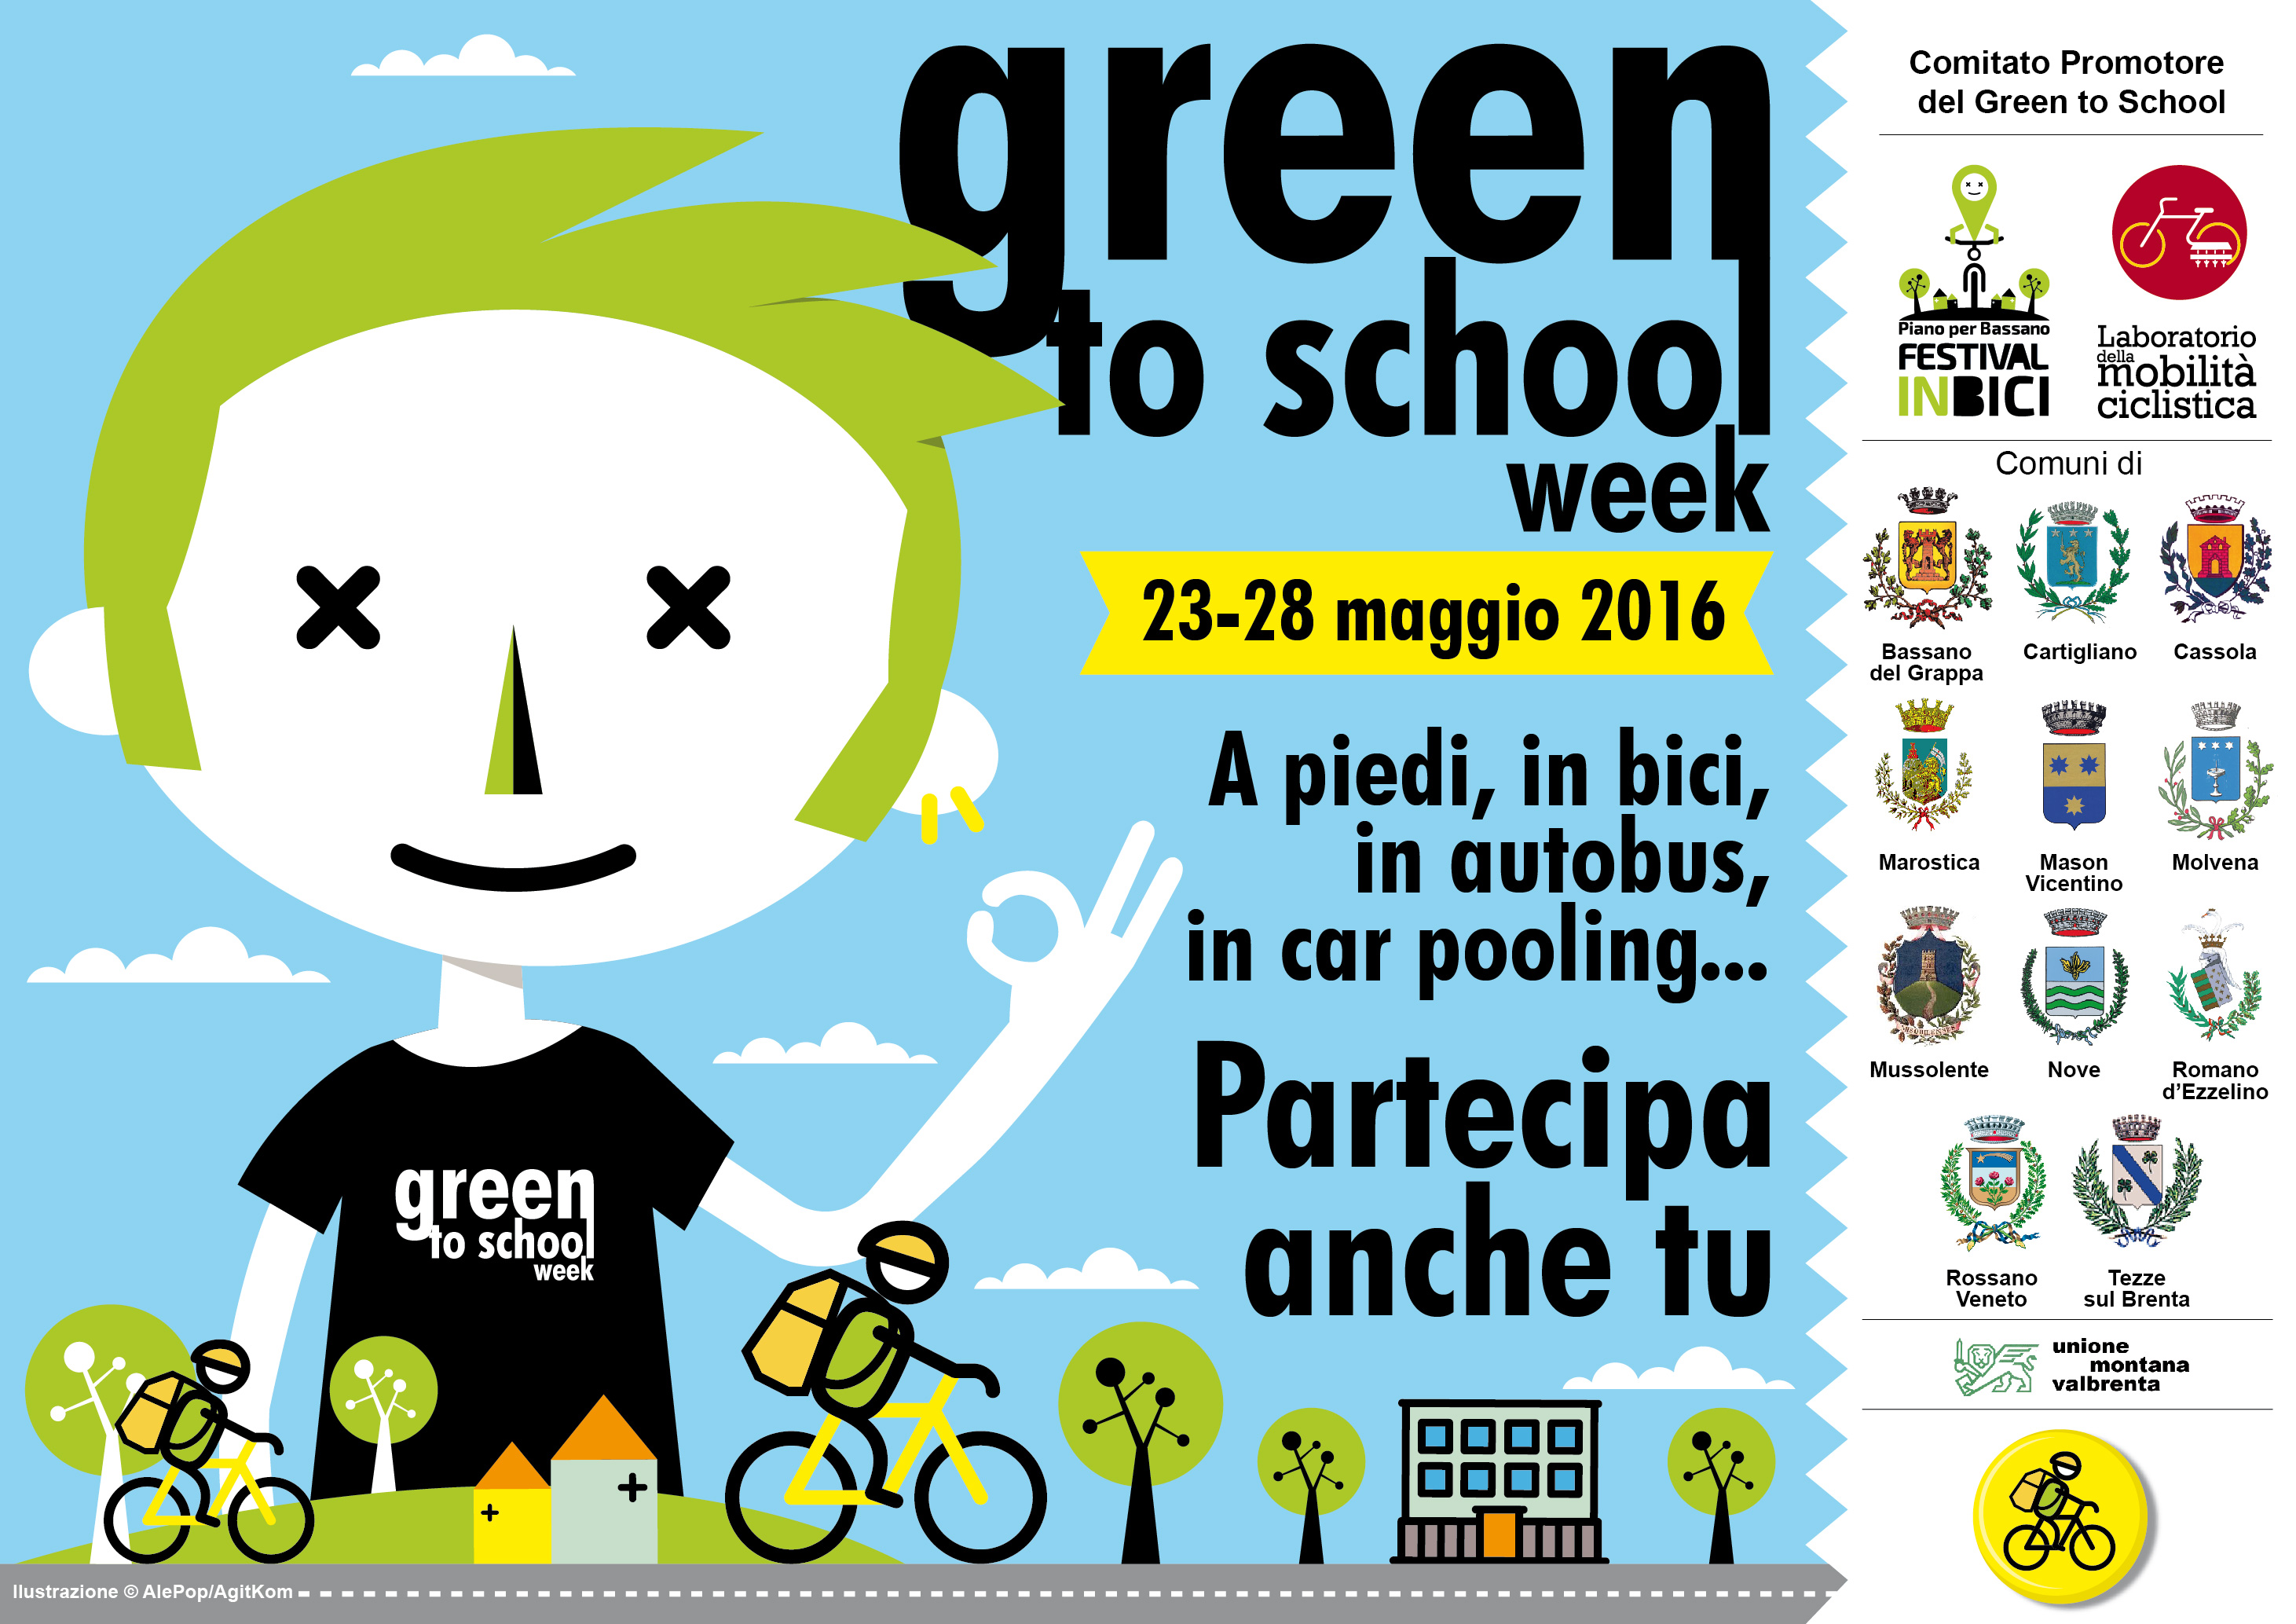 Green to school 2016